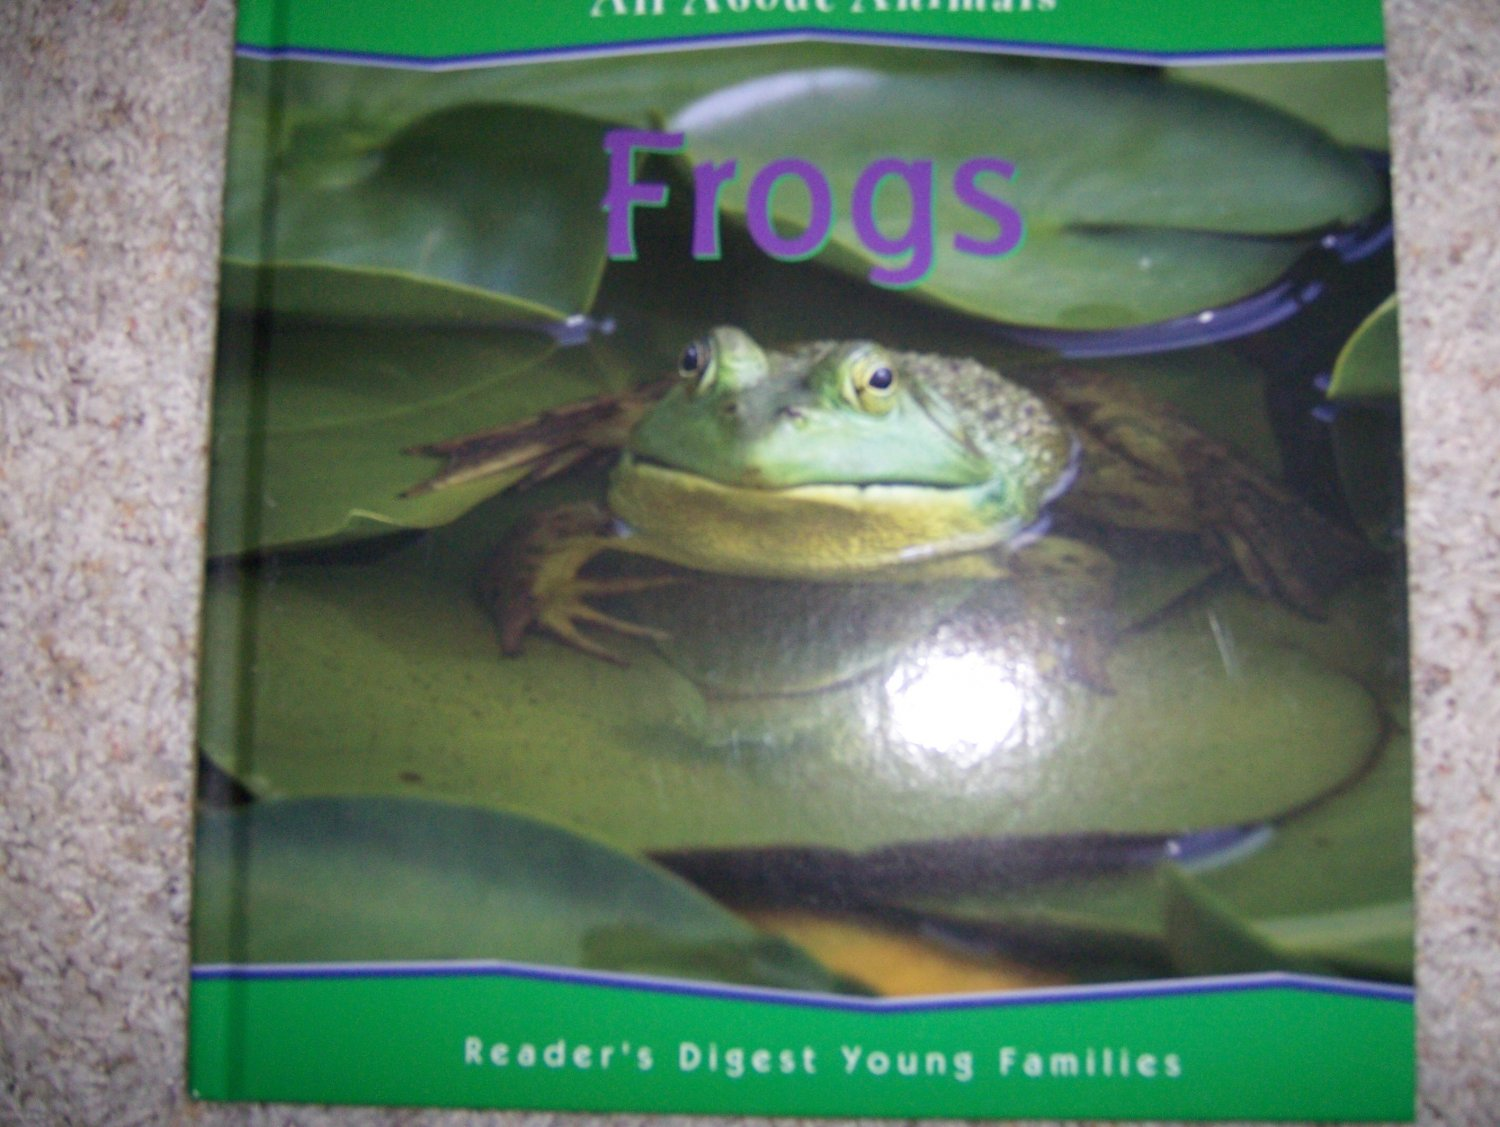 """All About Animals """"Frogs"""" Collectors Illustrated Hardcover Book BNK743"""